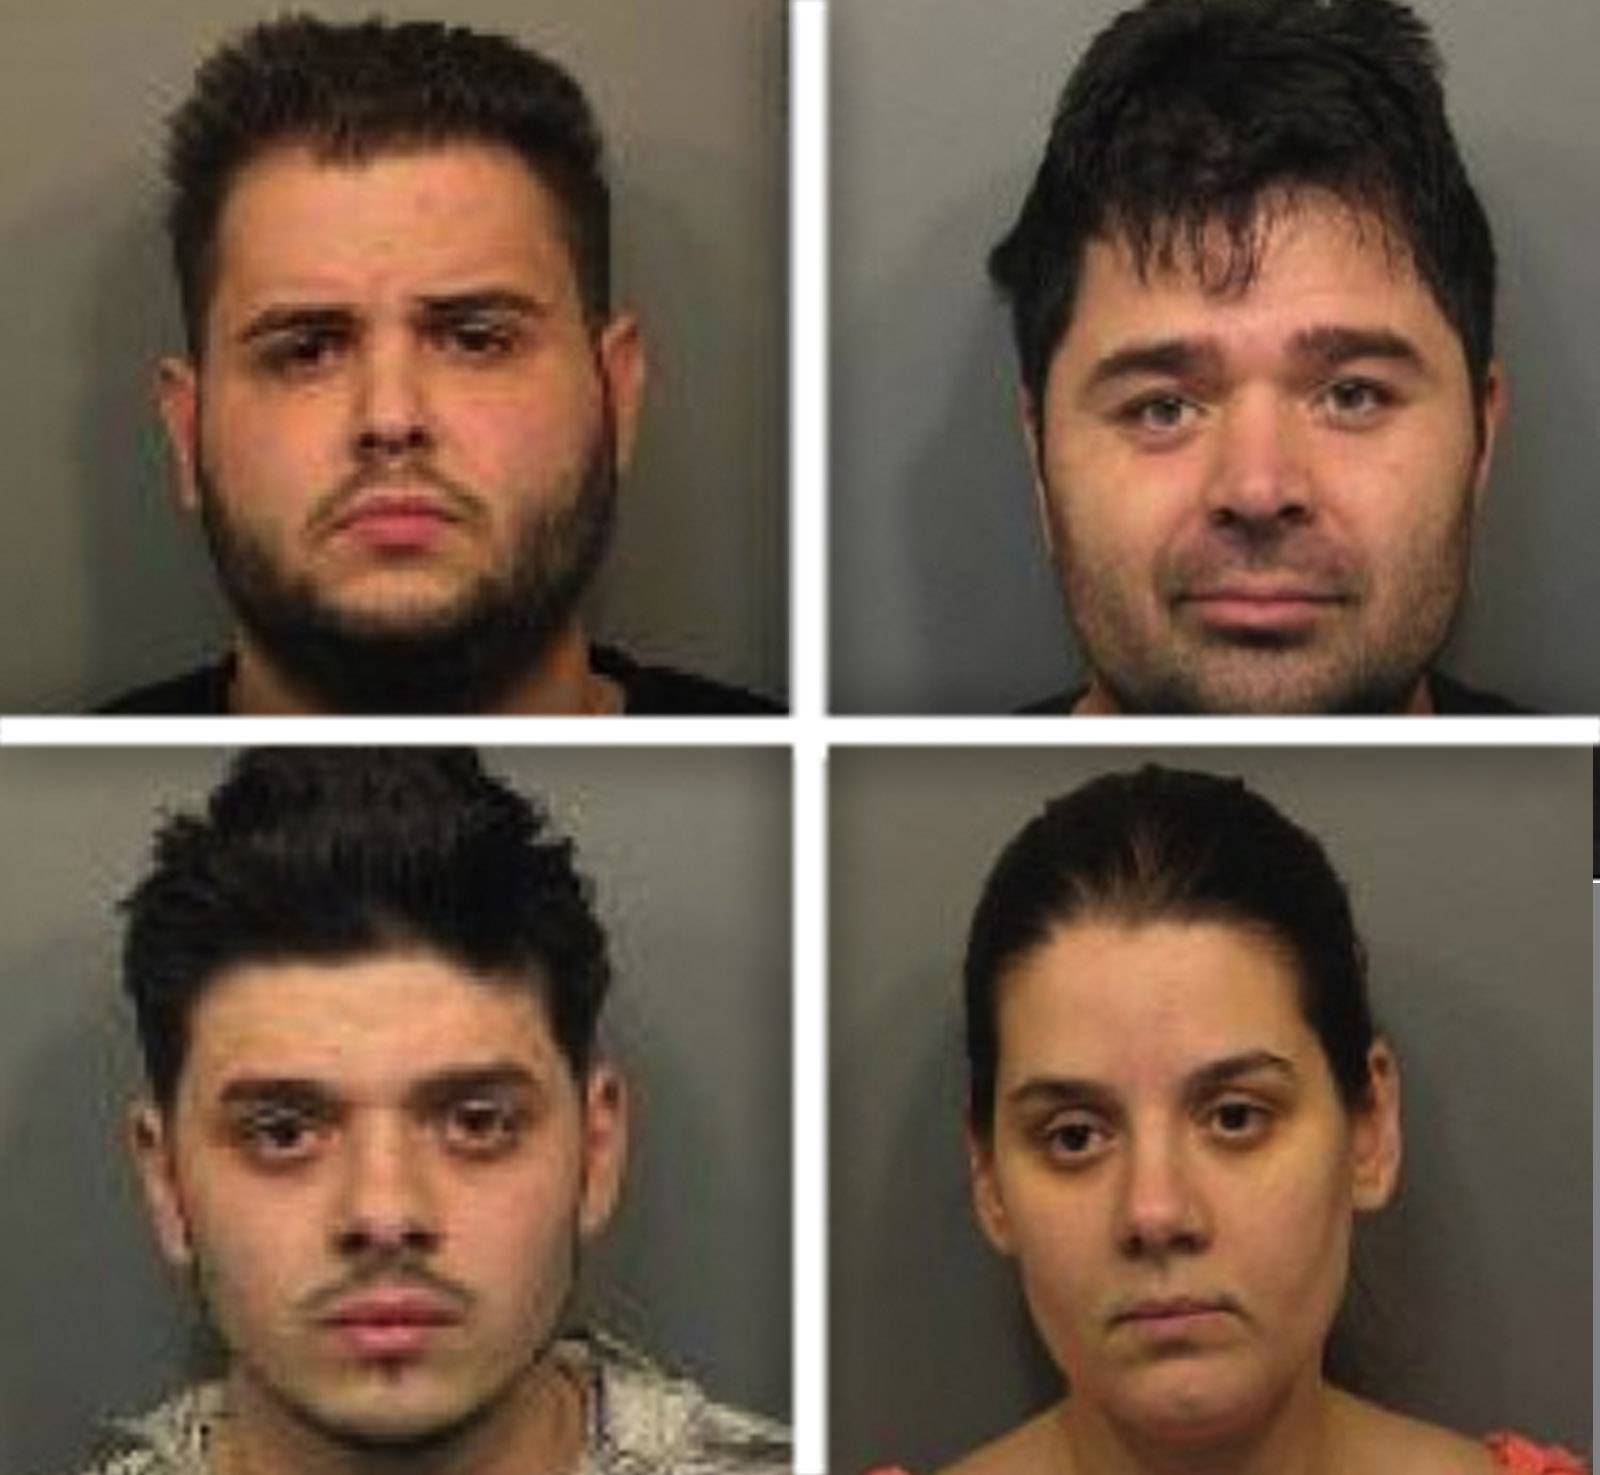 Clockwise from top left, Zvanko Dobobrov, Dragan Moro Owens, Natsasa Petrov and Kochak Owens were charged in a suburban shoplifting ring investigation.